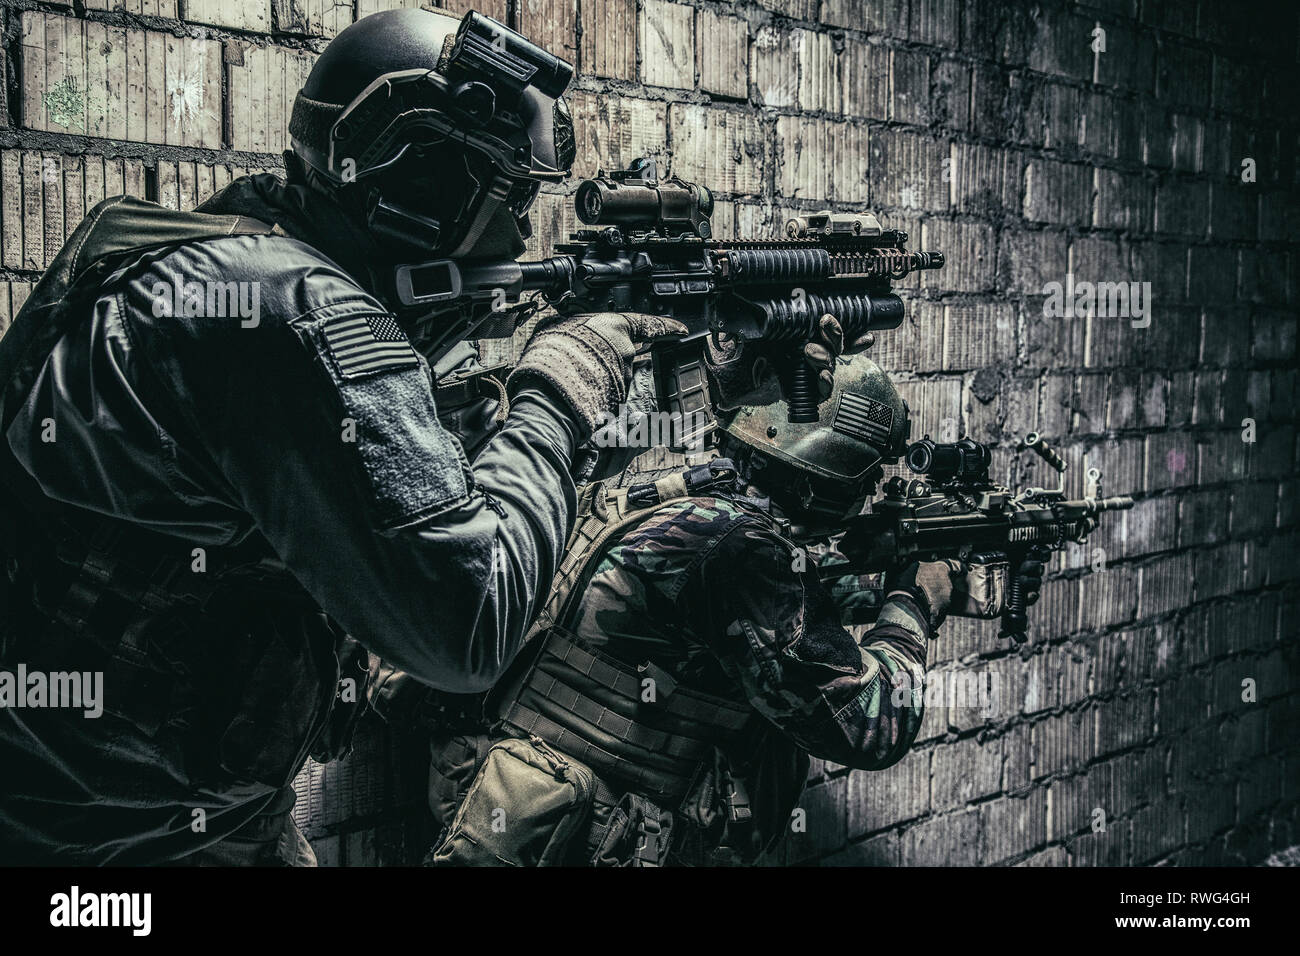 Pair of soldiers in action under the cover of darkness. - Stock Image